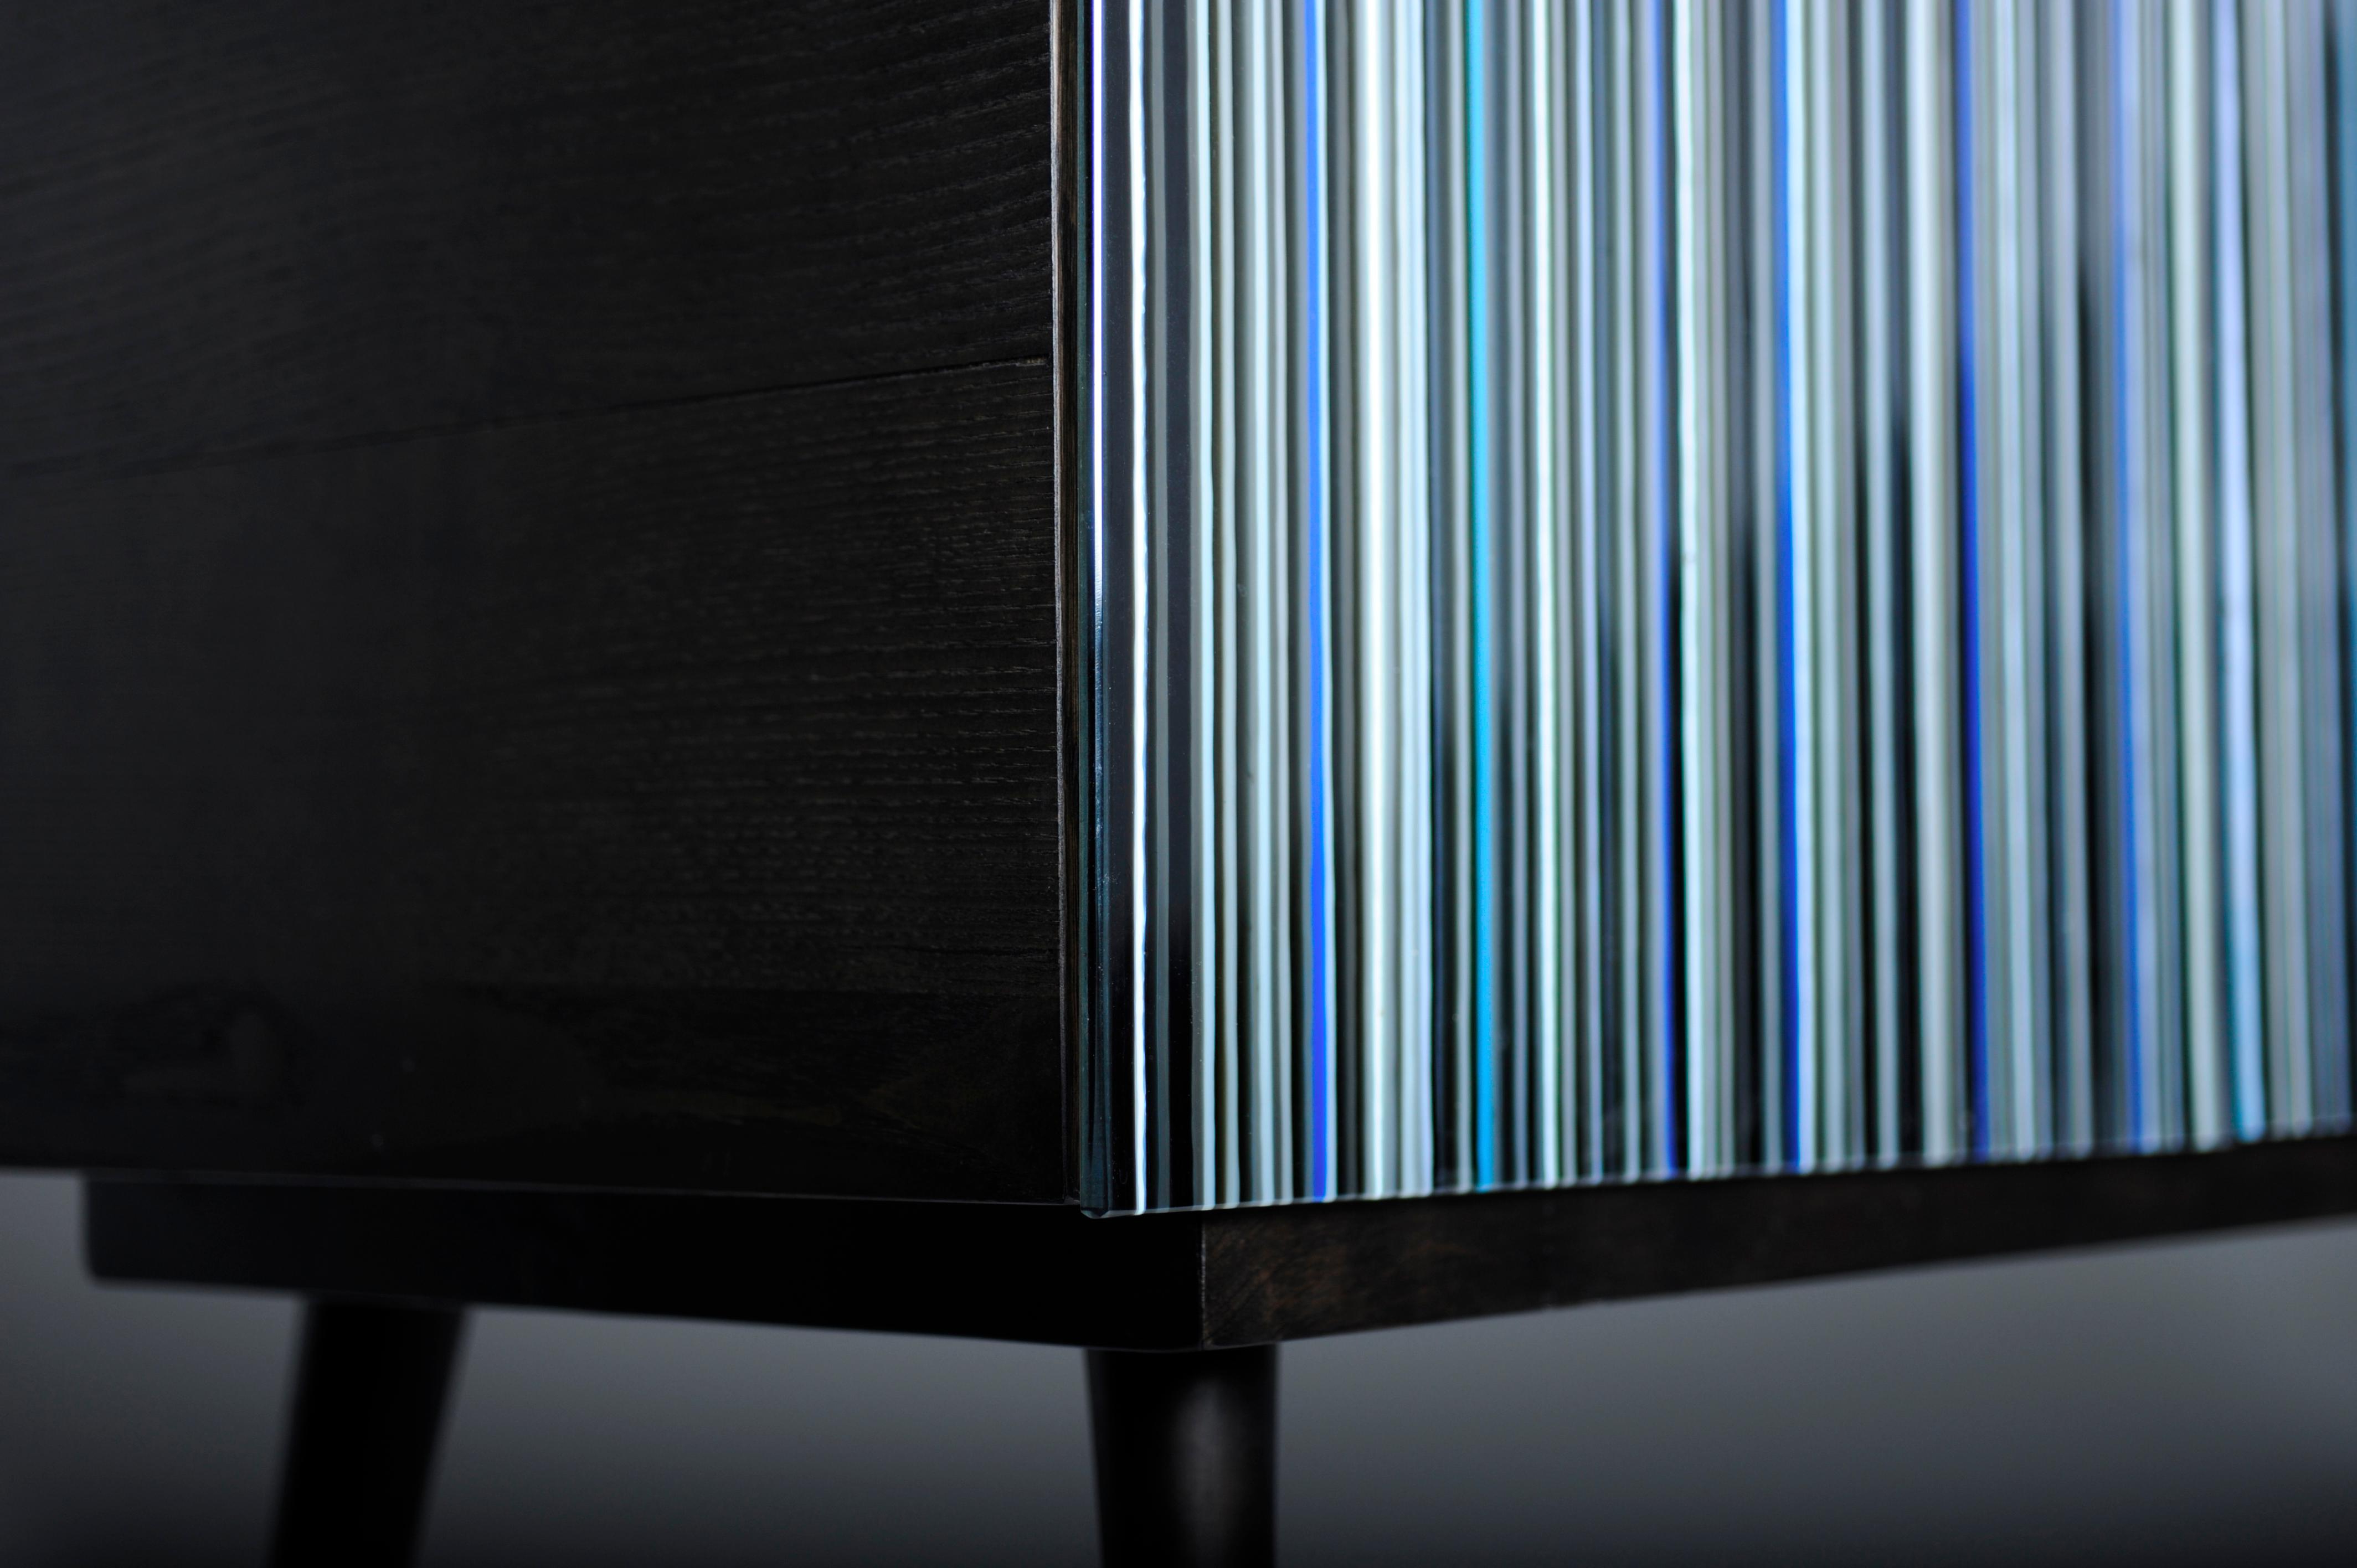 Retro Style Buffet Credenza, Barcode Design In Colored Glass, Shades Of Blue Inside Blue Stained Glass Credenzas (View 7 of 20)